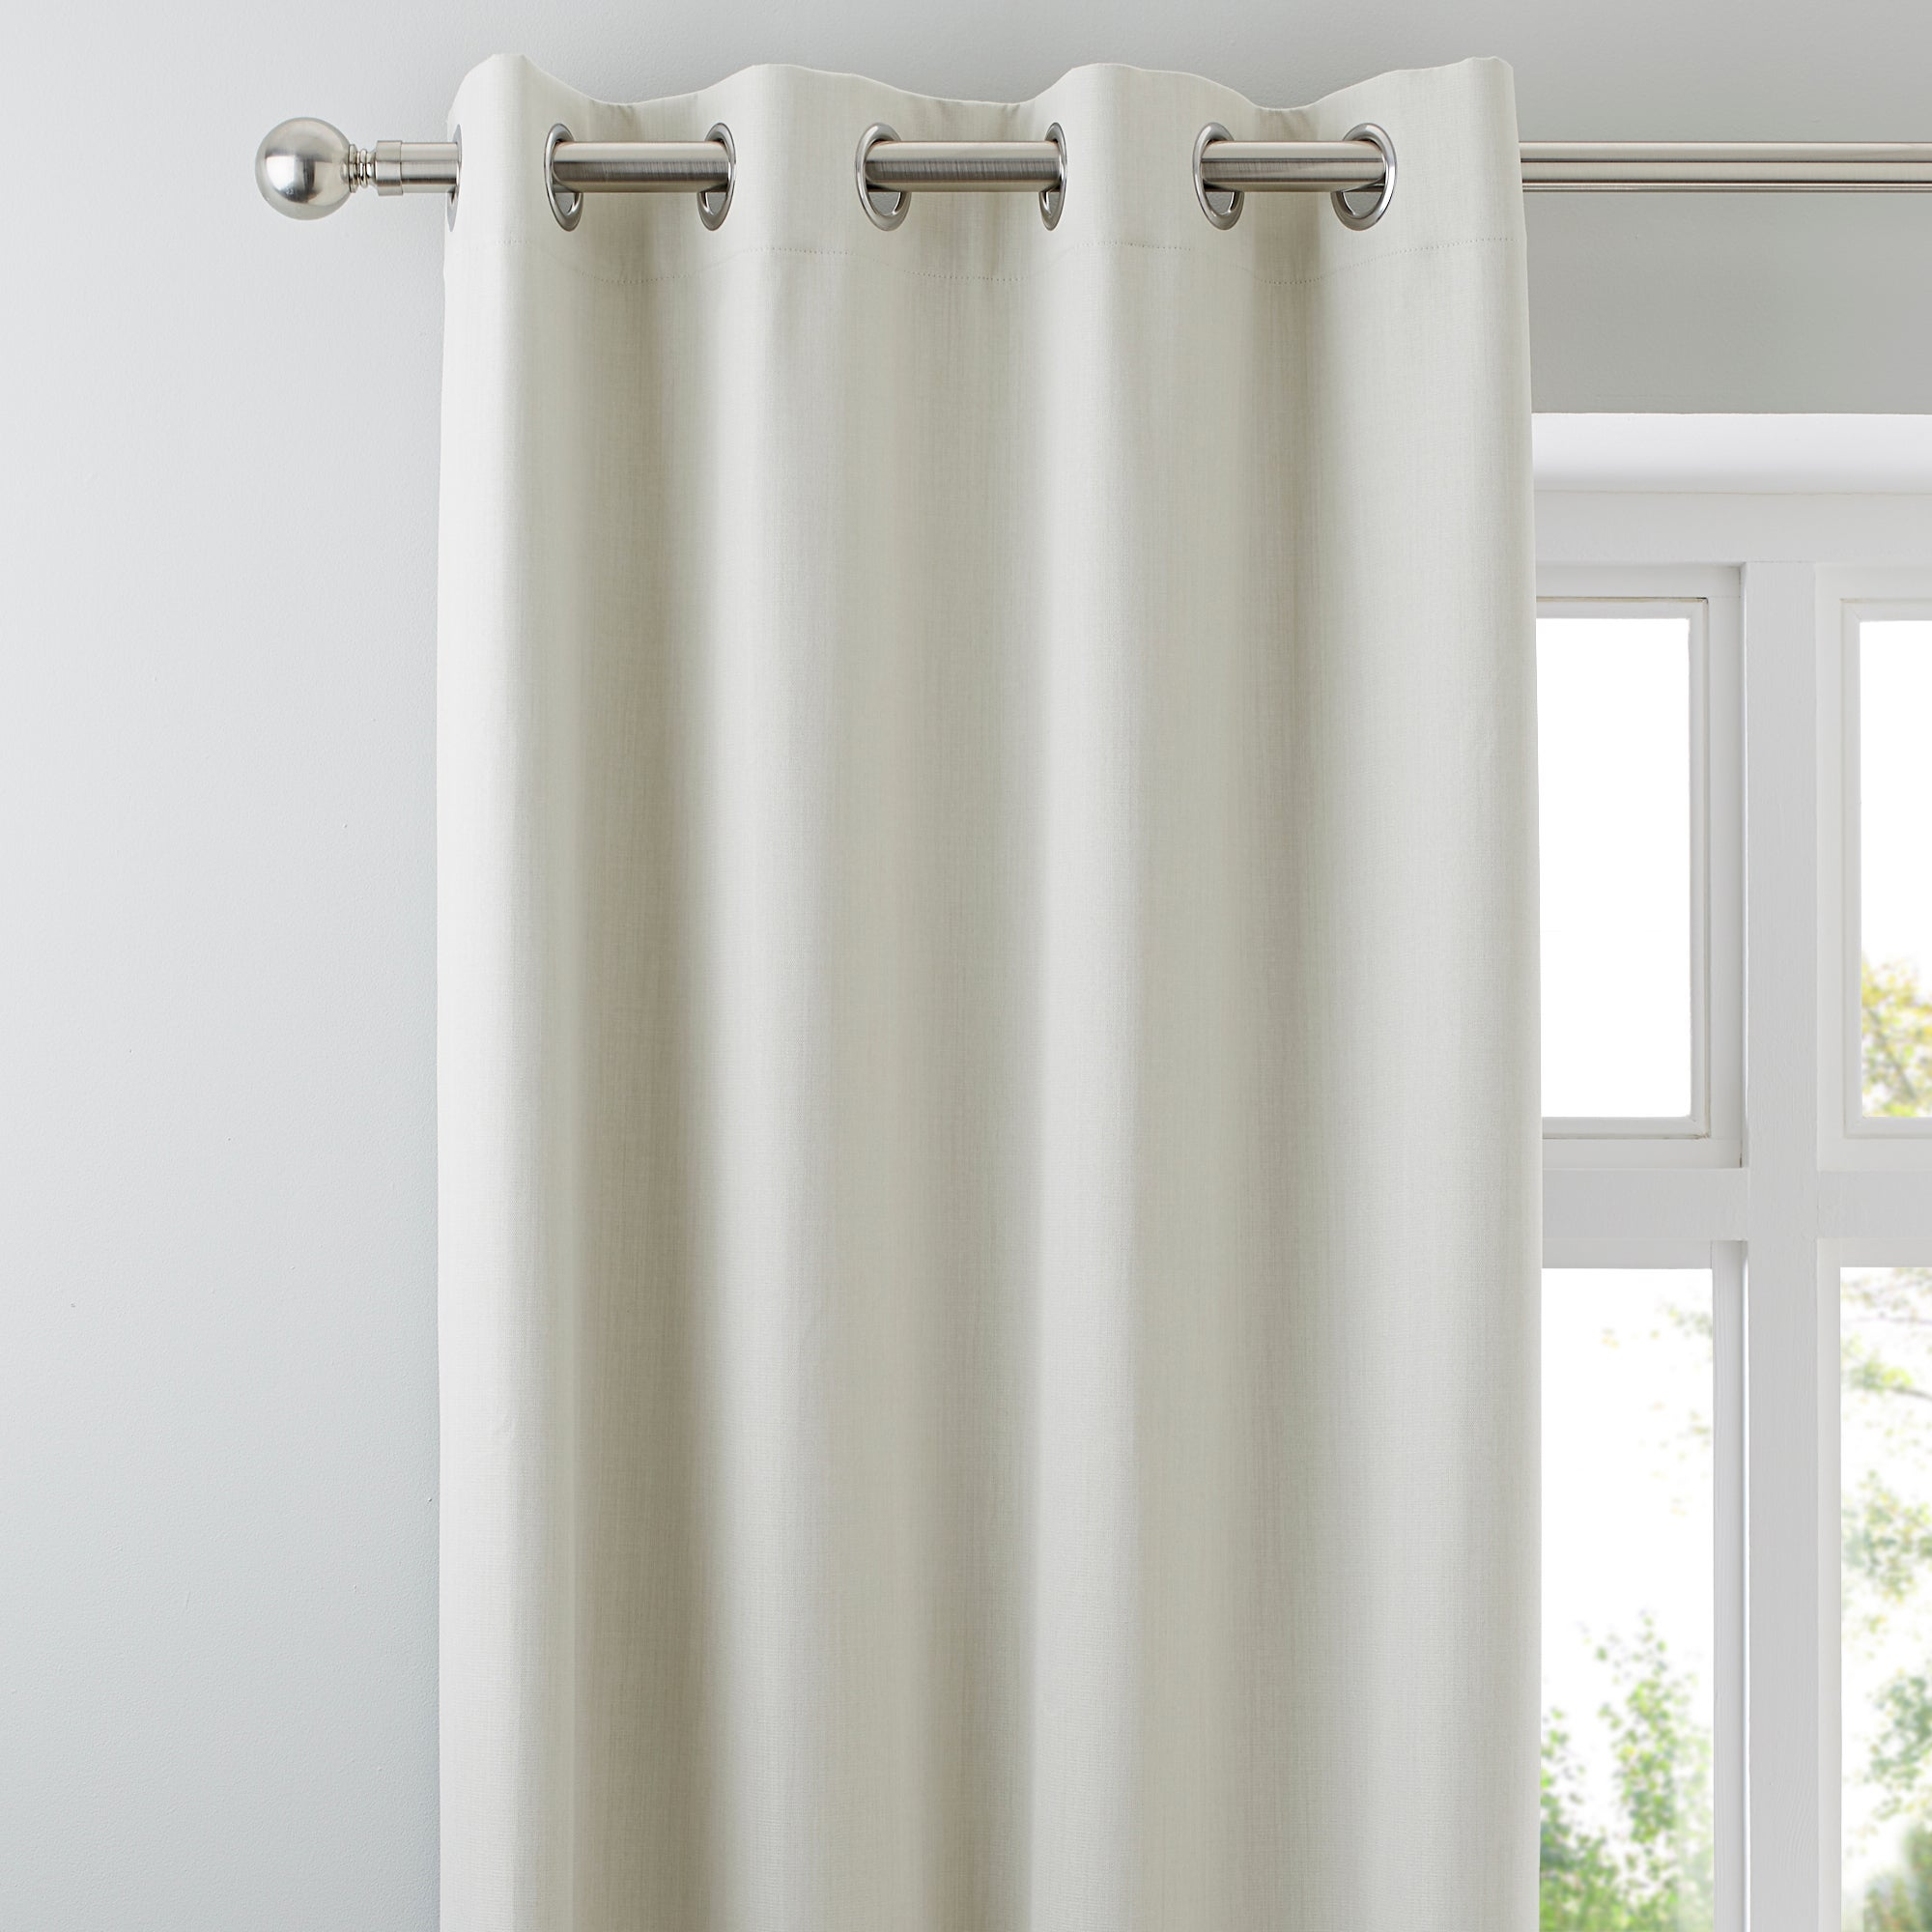 Waters and Noble Natural Solar Blackout Eyelet Curtains